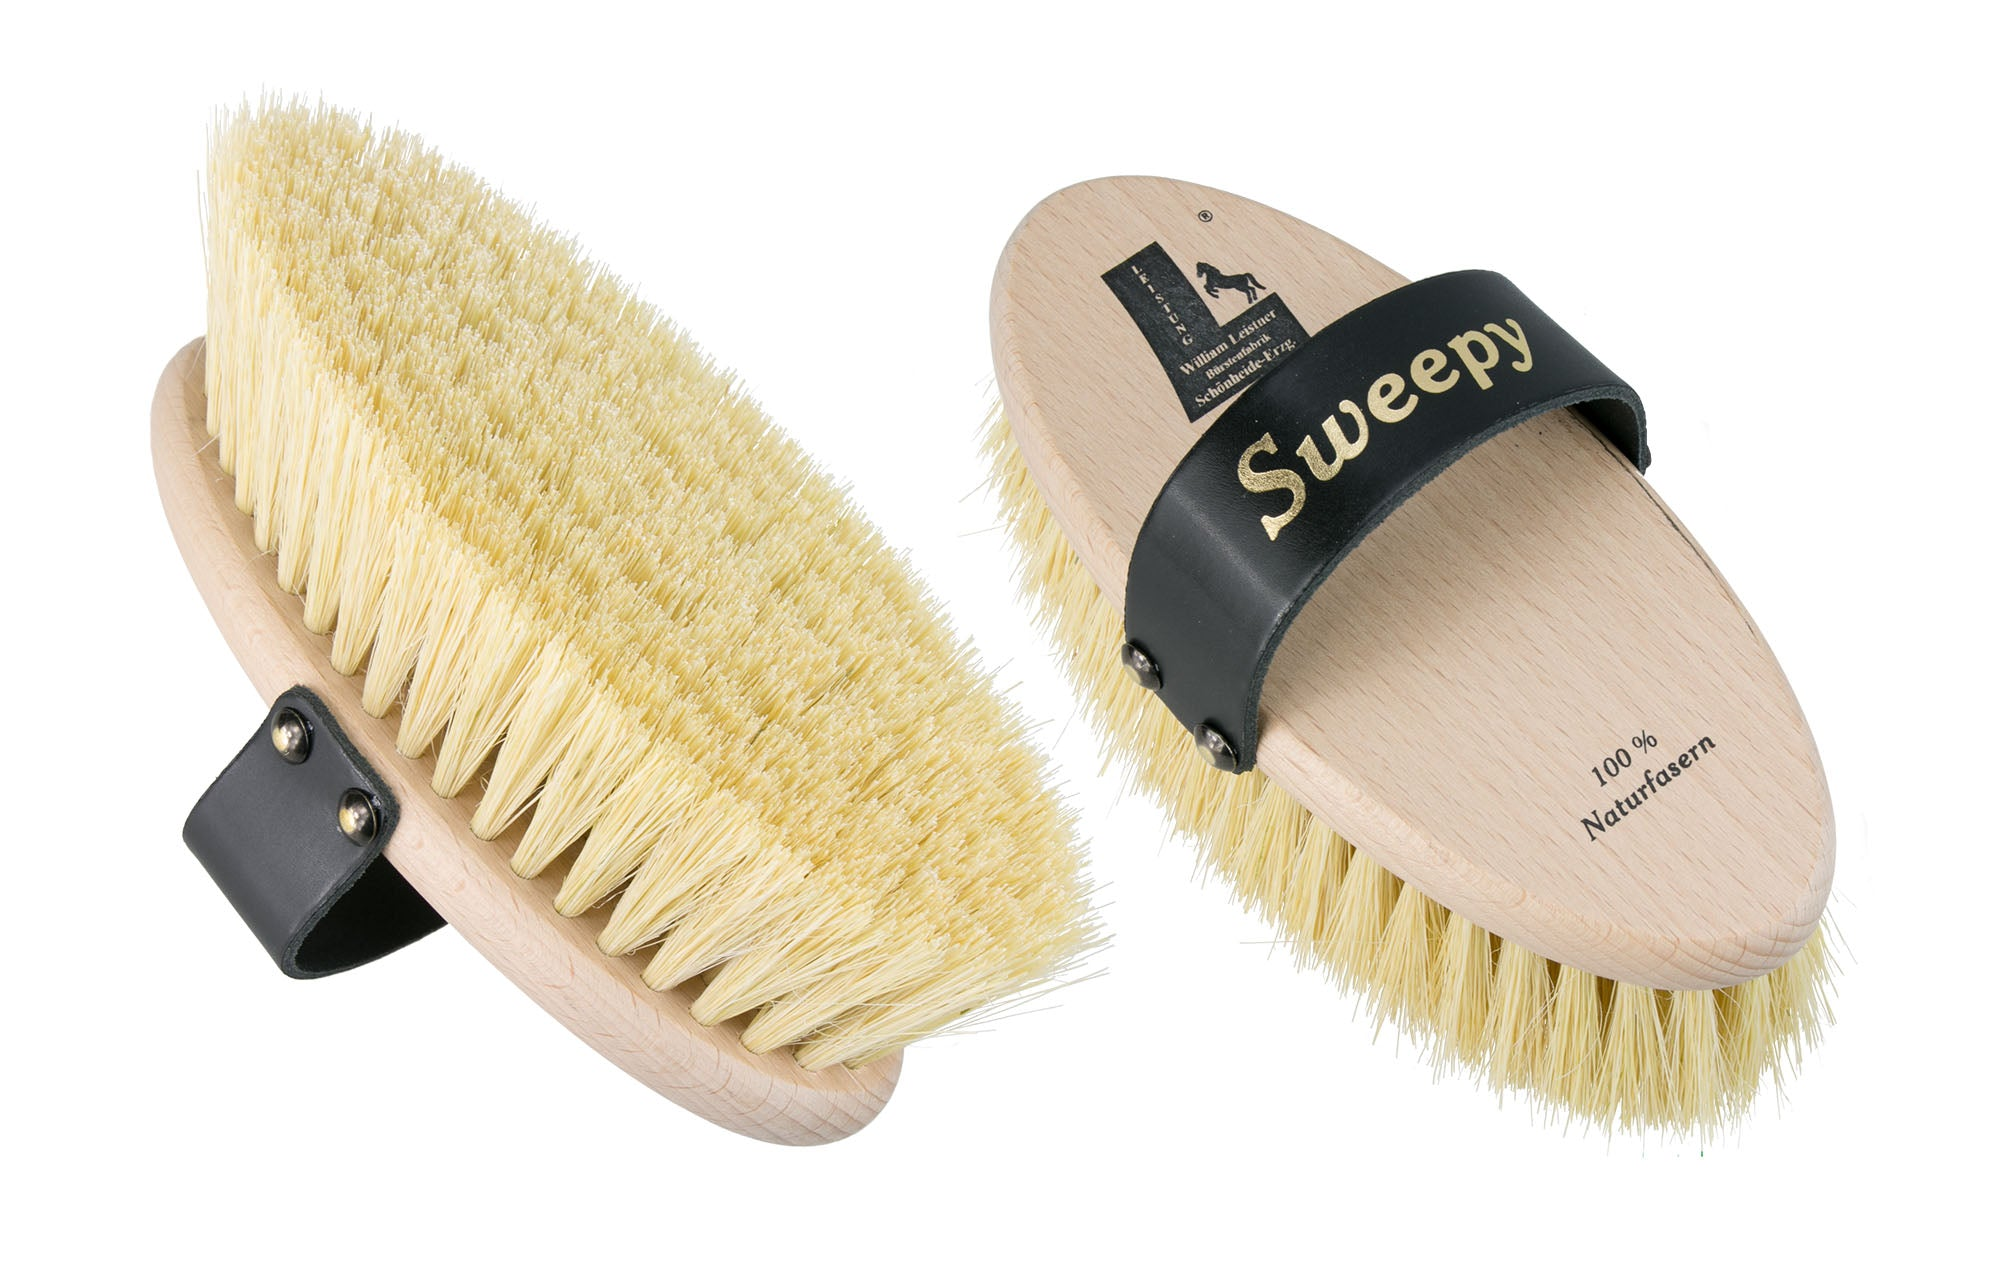 Leistner Sweepy Sweat & Grime Brush